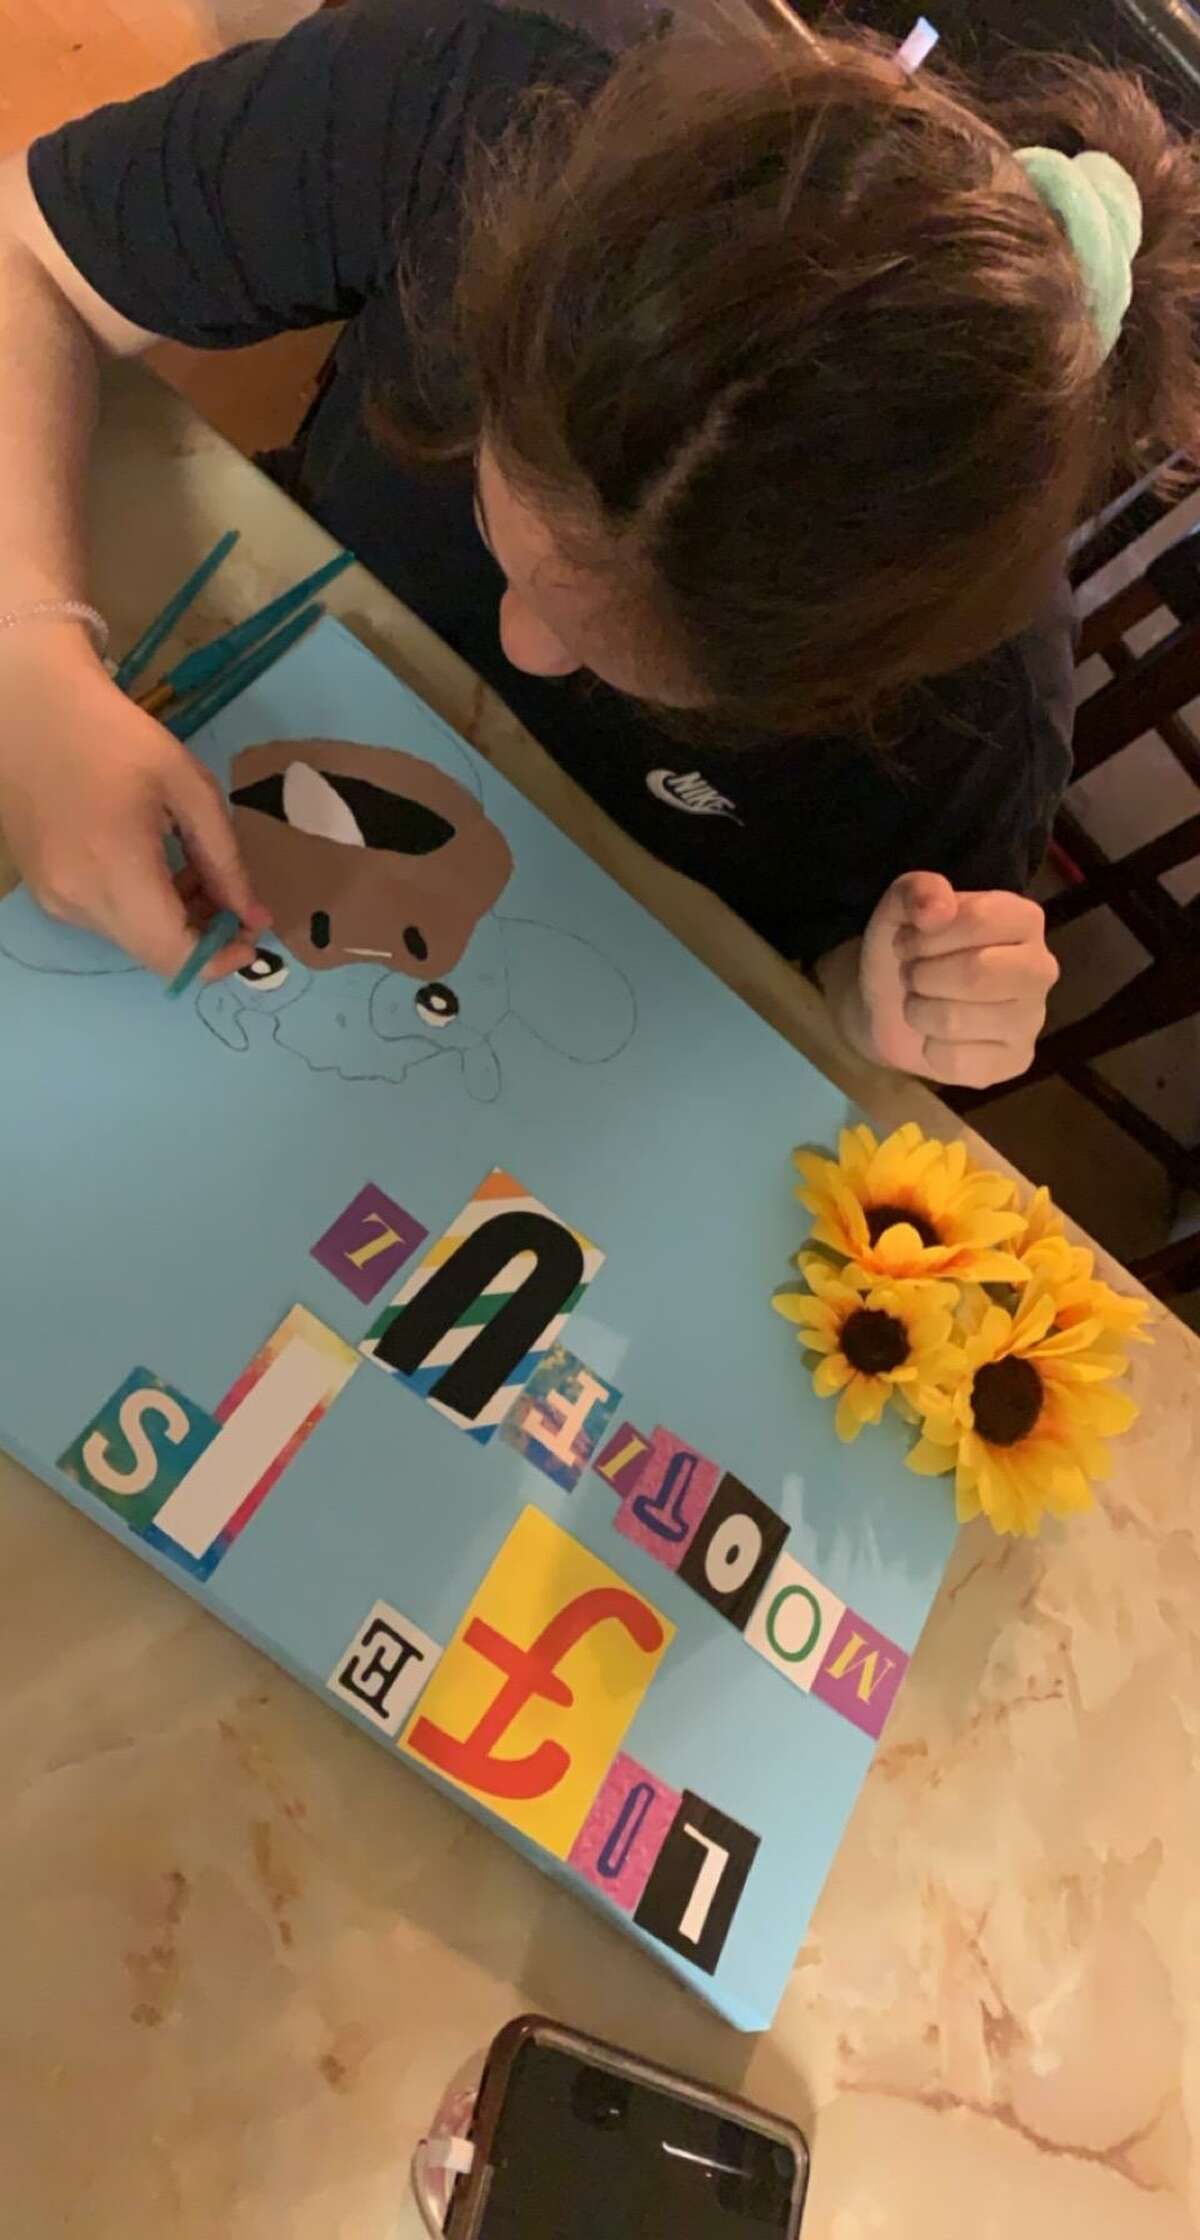 """Over 60 students from Cigarroa, Martin, and Nixon High Schools along with students from Cigarroa, Lamar, and Memorial Middle Schools entered art pieces for the 58th Annual Laredo International Fair & Exposition, """"Show-and-Go Expo"""